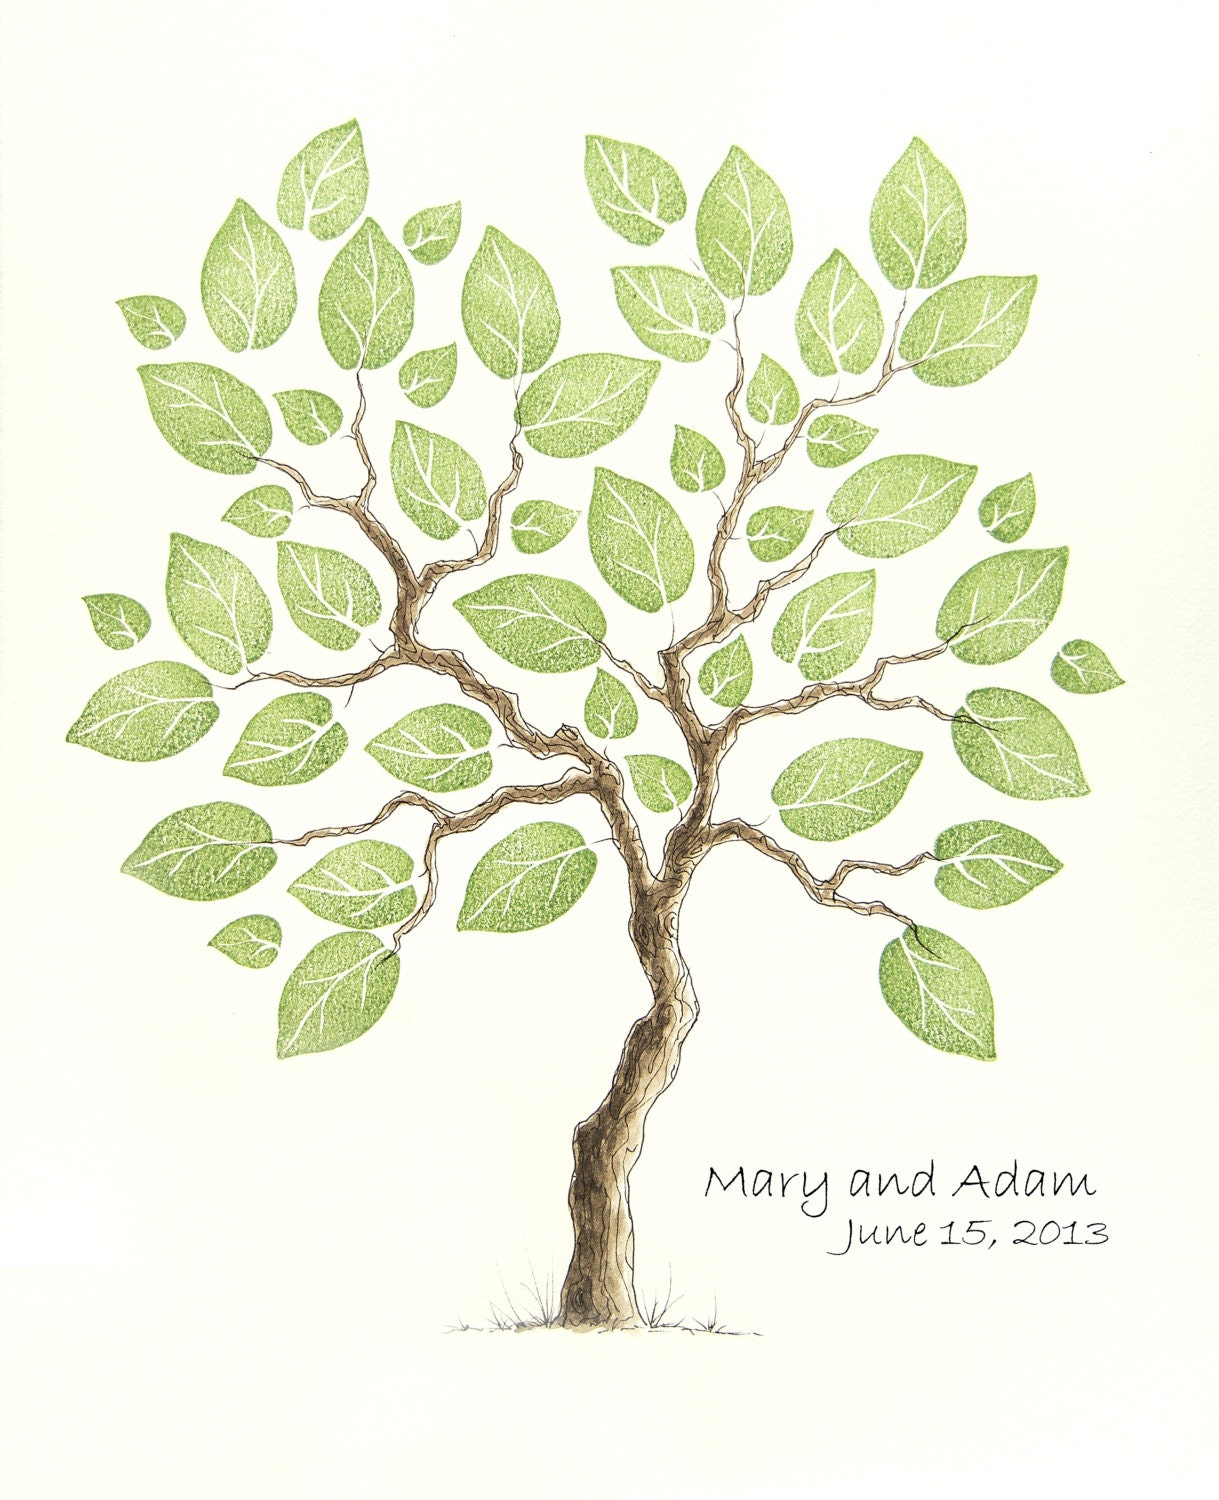 Wedding Tree Genealogy Chart By Melangeriedesign On Etsy: Wedding Tree Guest Book SMALL Family Tree Original Watercolor